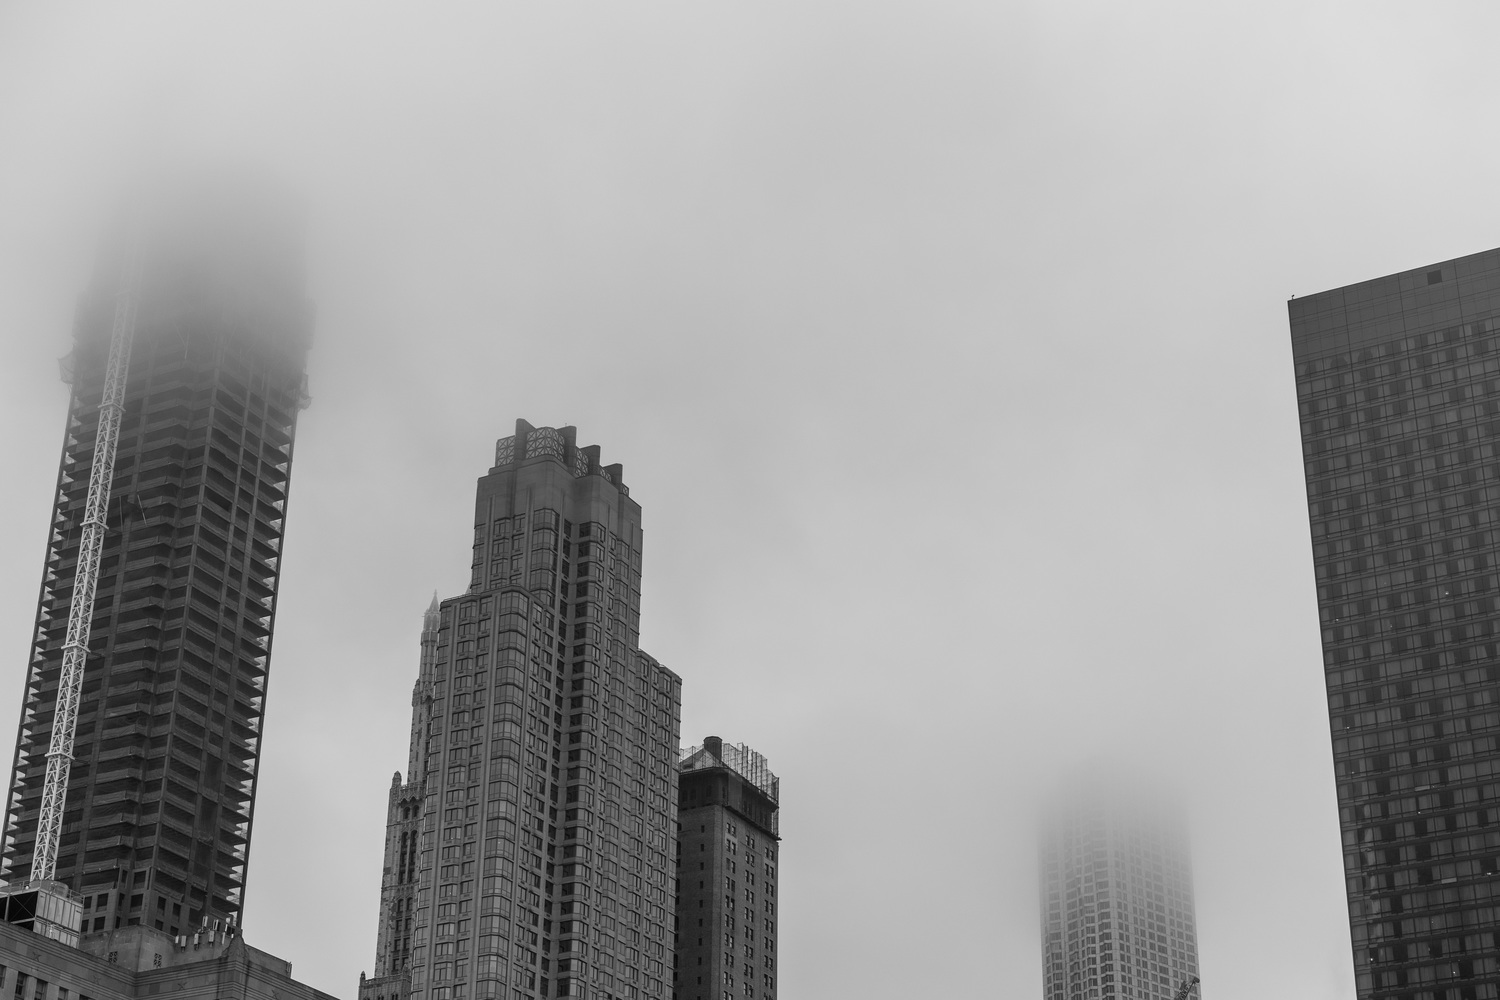 FiDi in the clouds